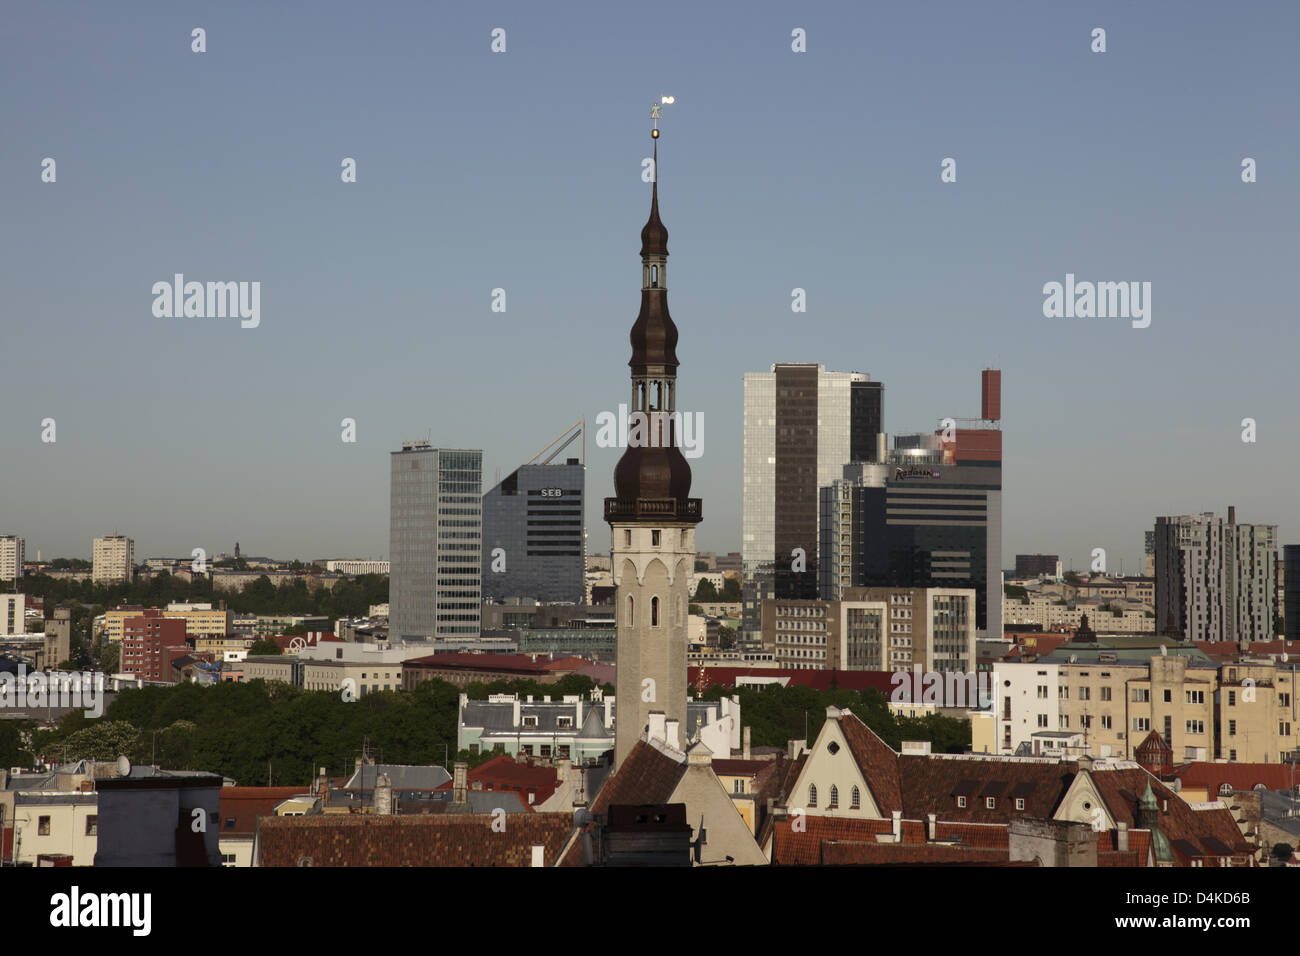 The tower of the the old town hall and modern buildings are pictured in Tallinn, Estonia, June 2009. The old town - Stock Image